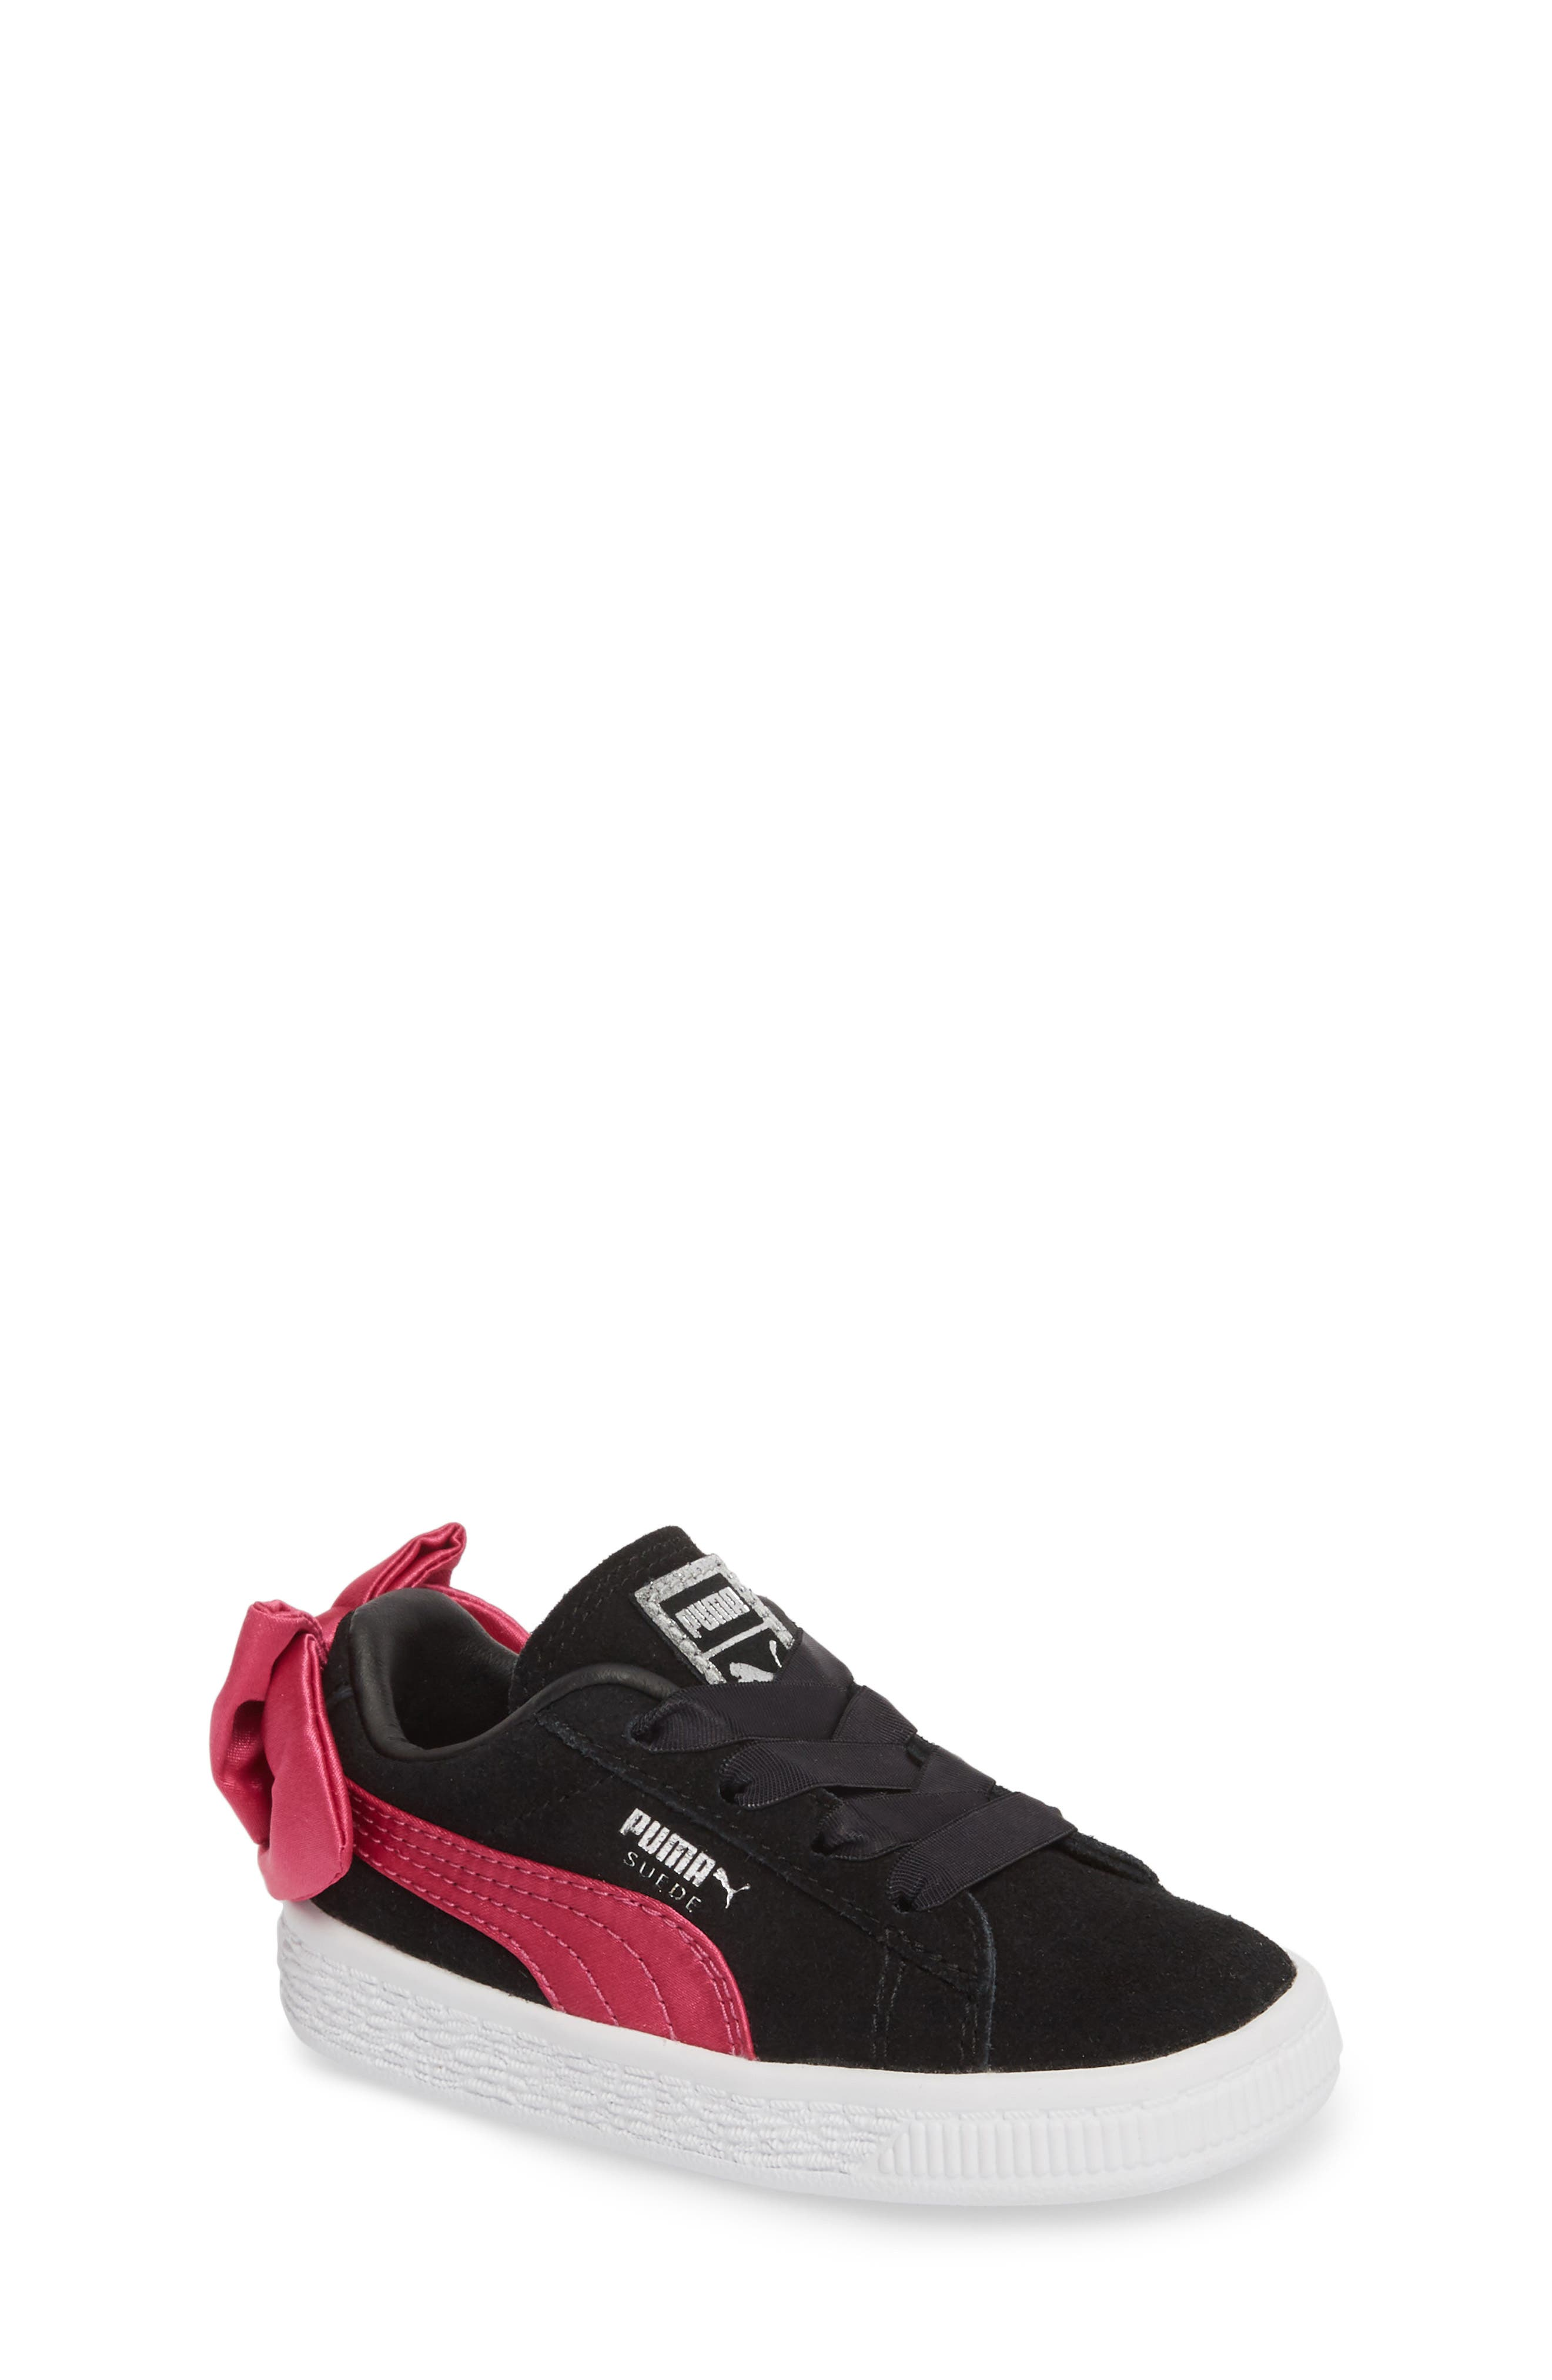 Bow Sneaker,                             Main thumbnail 1, color,                             BLACK/ BEETROOT PURPLE